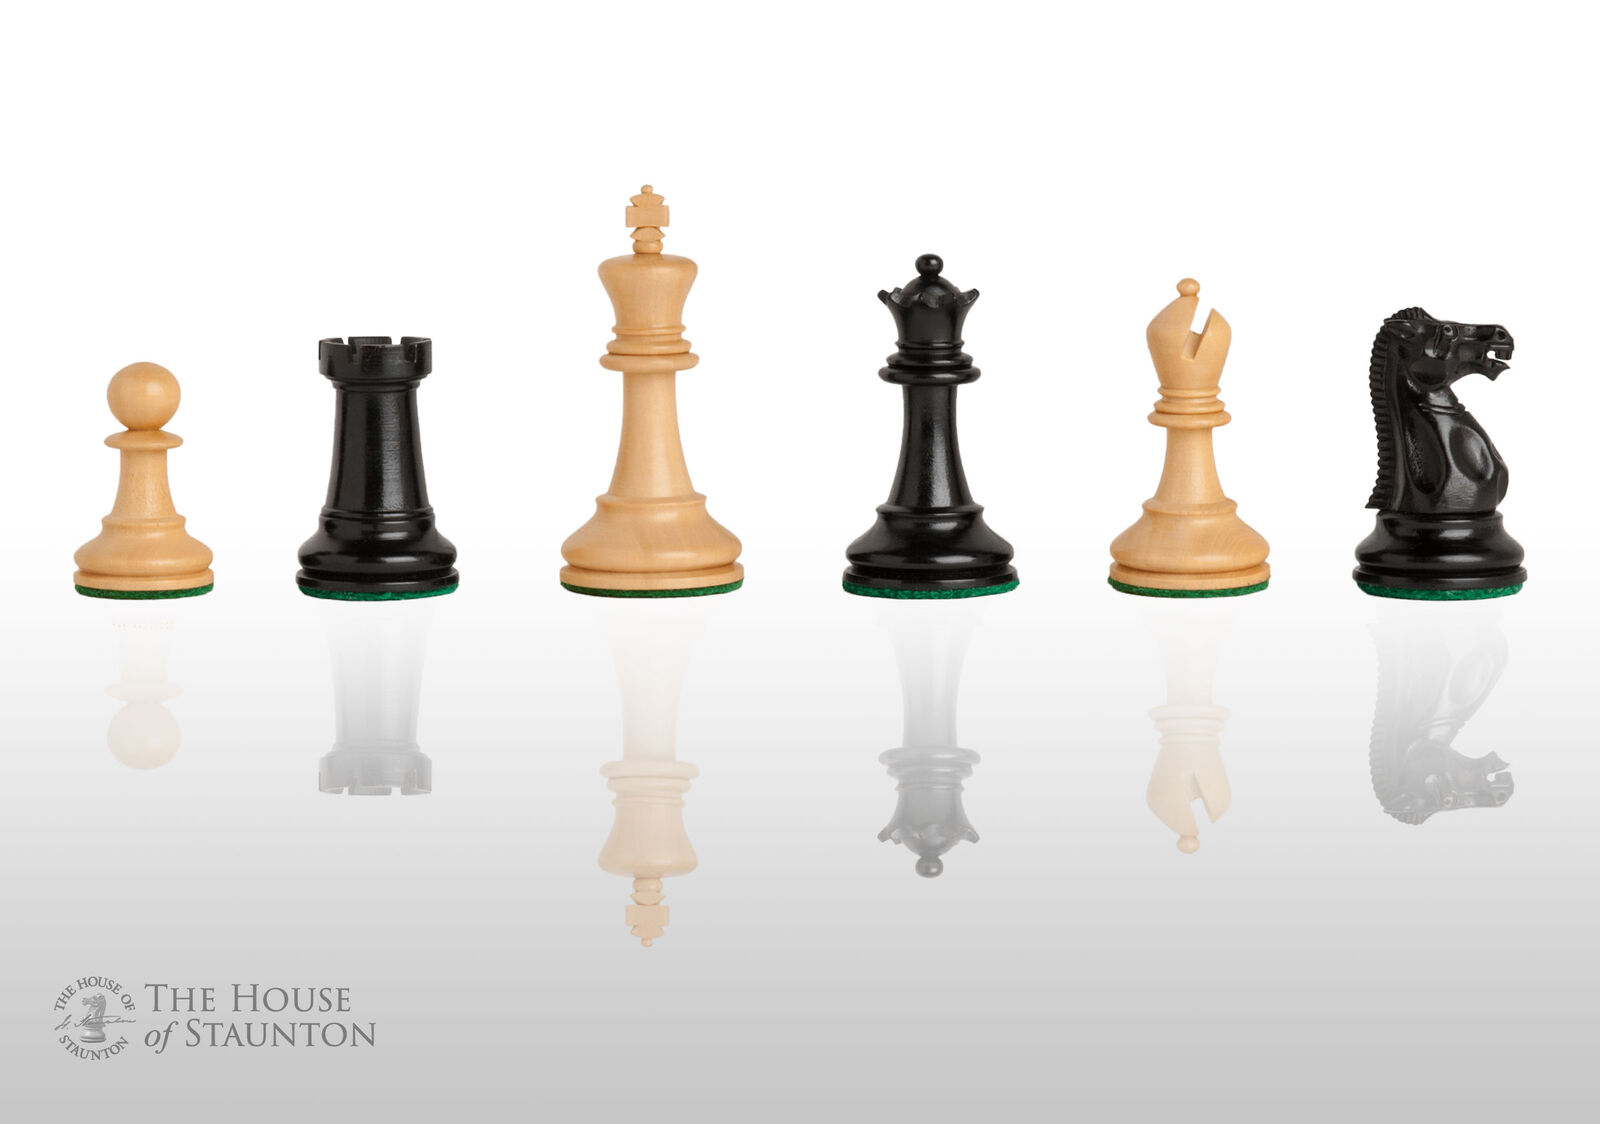 USCF Sales Reproduction of The Circa 1925 Series Luxury Chess Set - Pieces Only